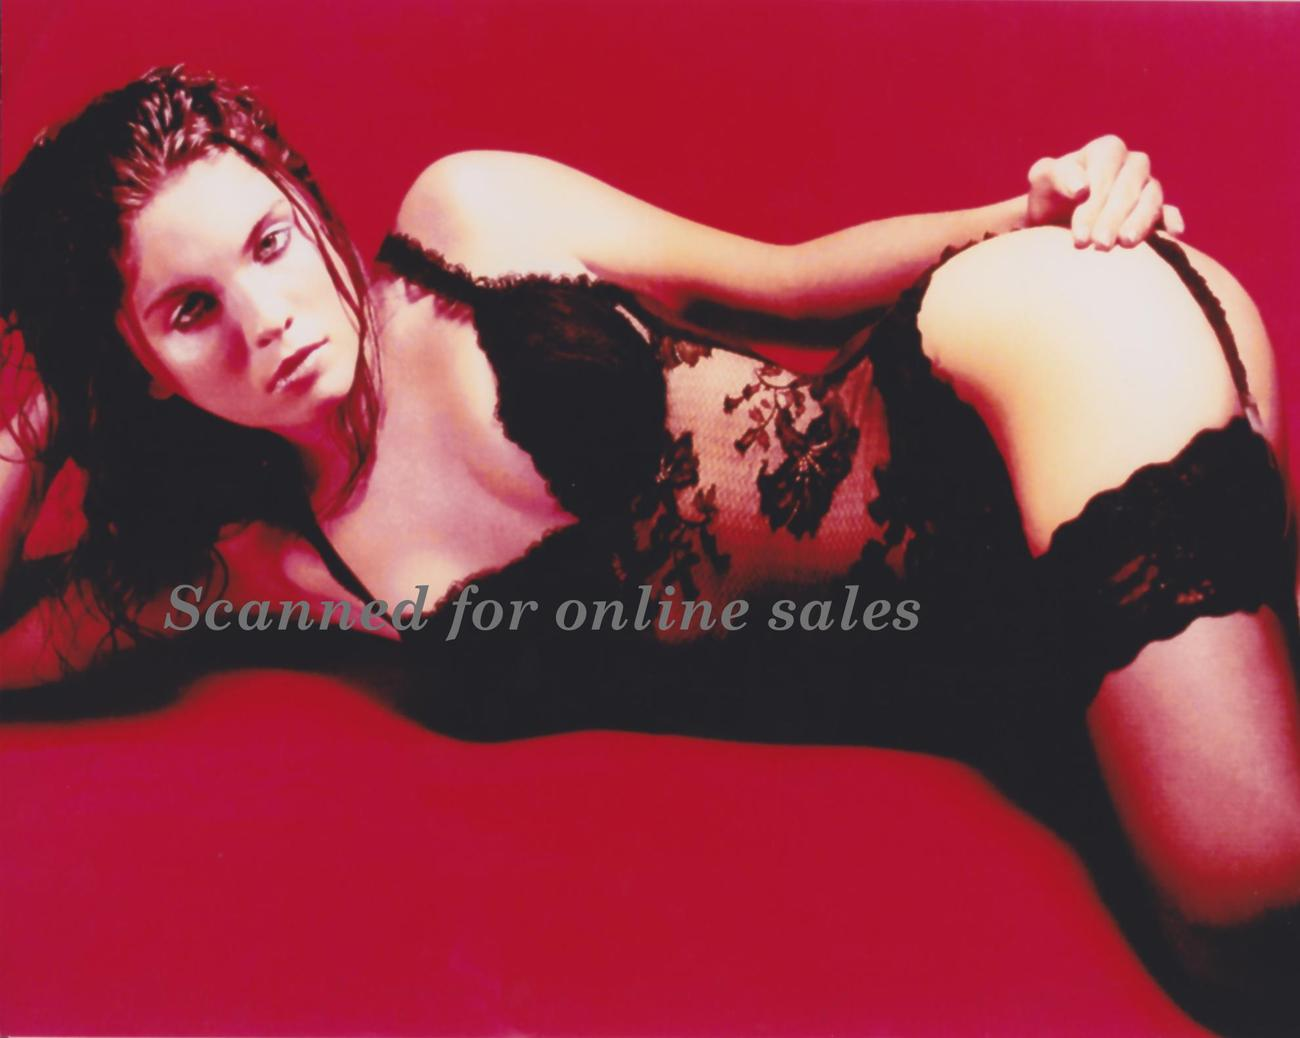 Charisma Carpenter Black Lace 8x10 Photo